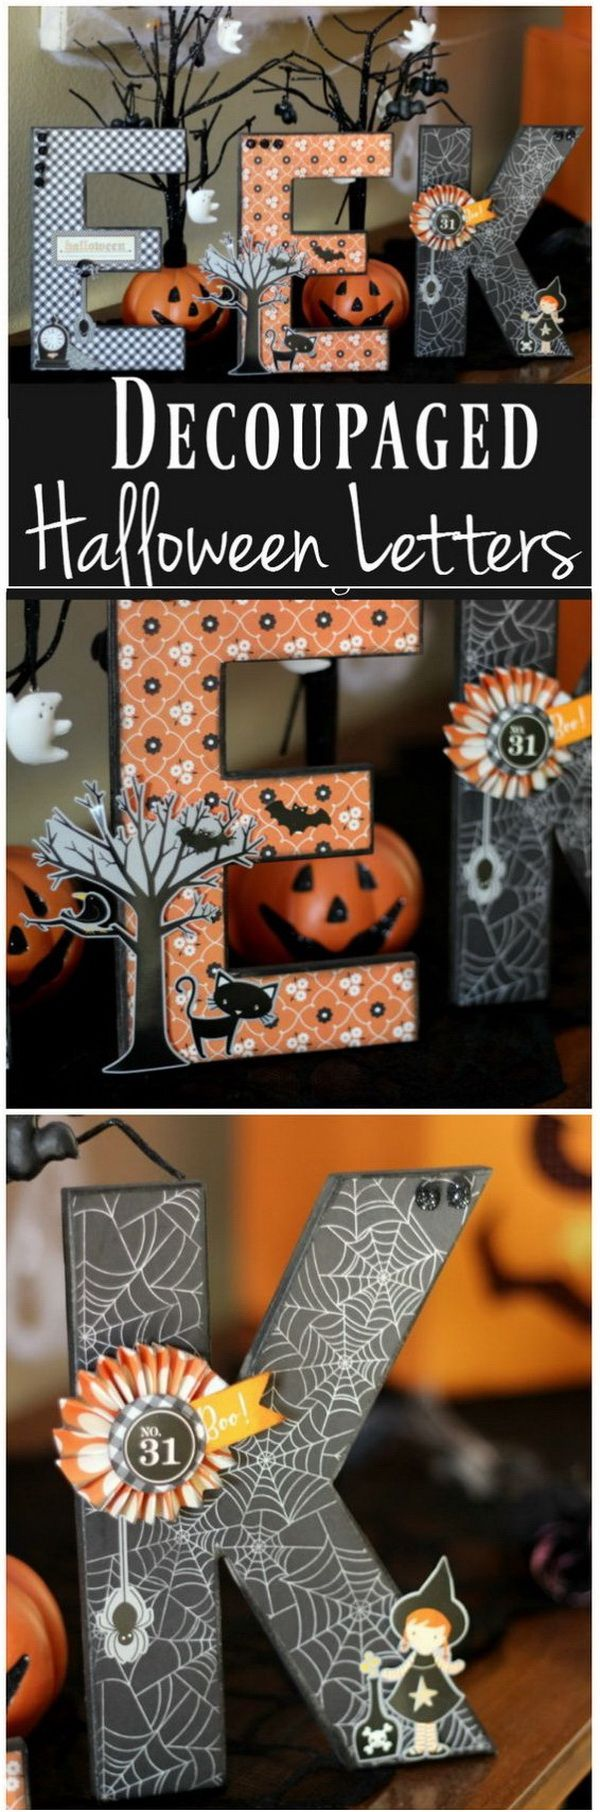 30+ Homemade Halloween Decoration Ideas Halloween by Shannon Grose - Whimsical Halloween Decorations